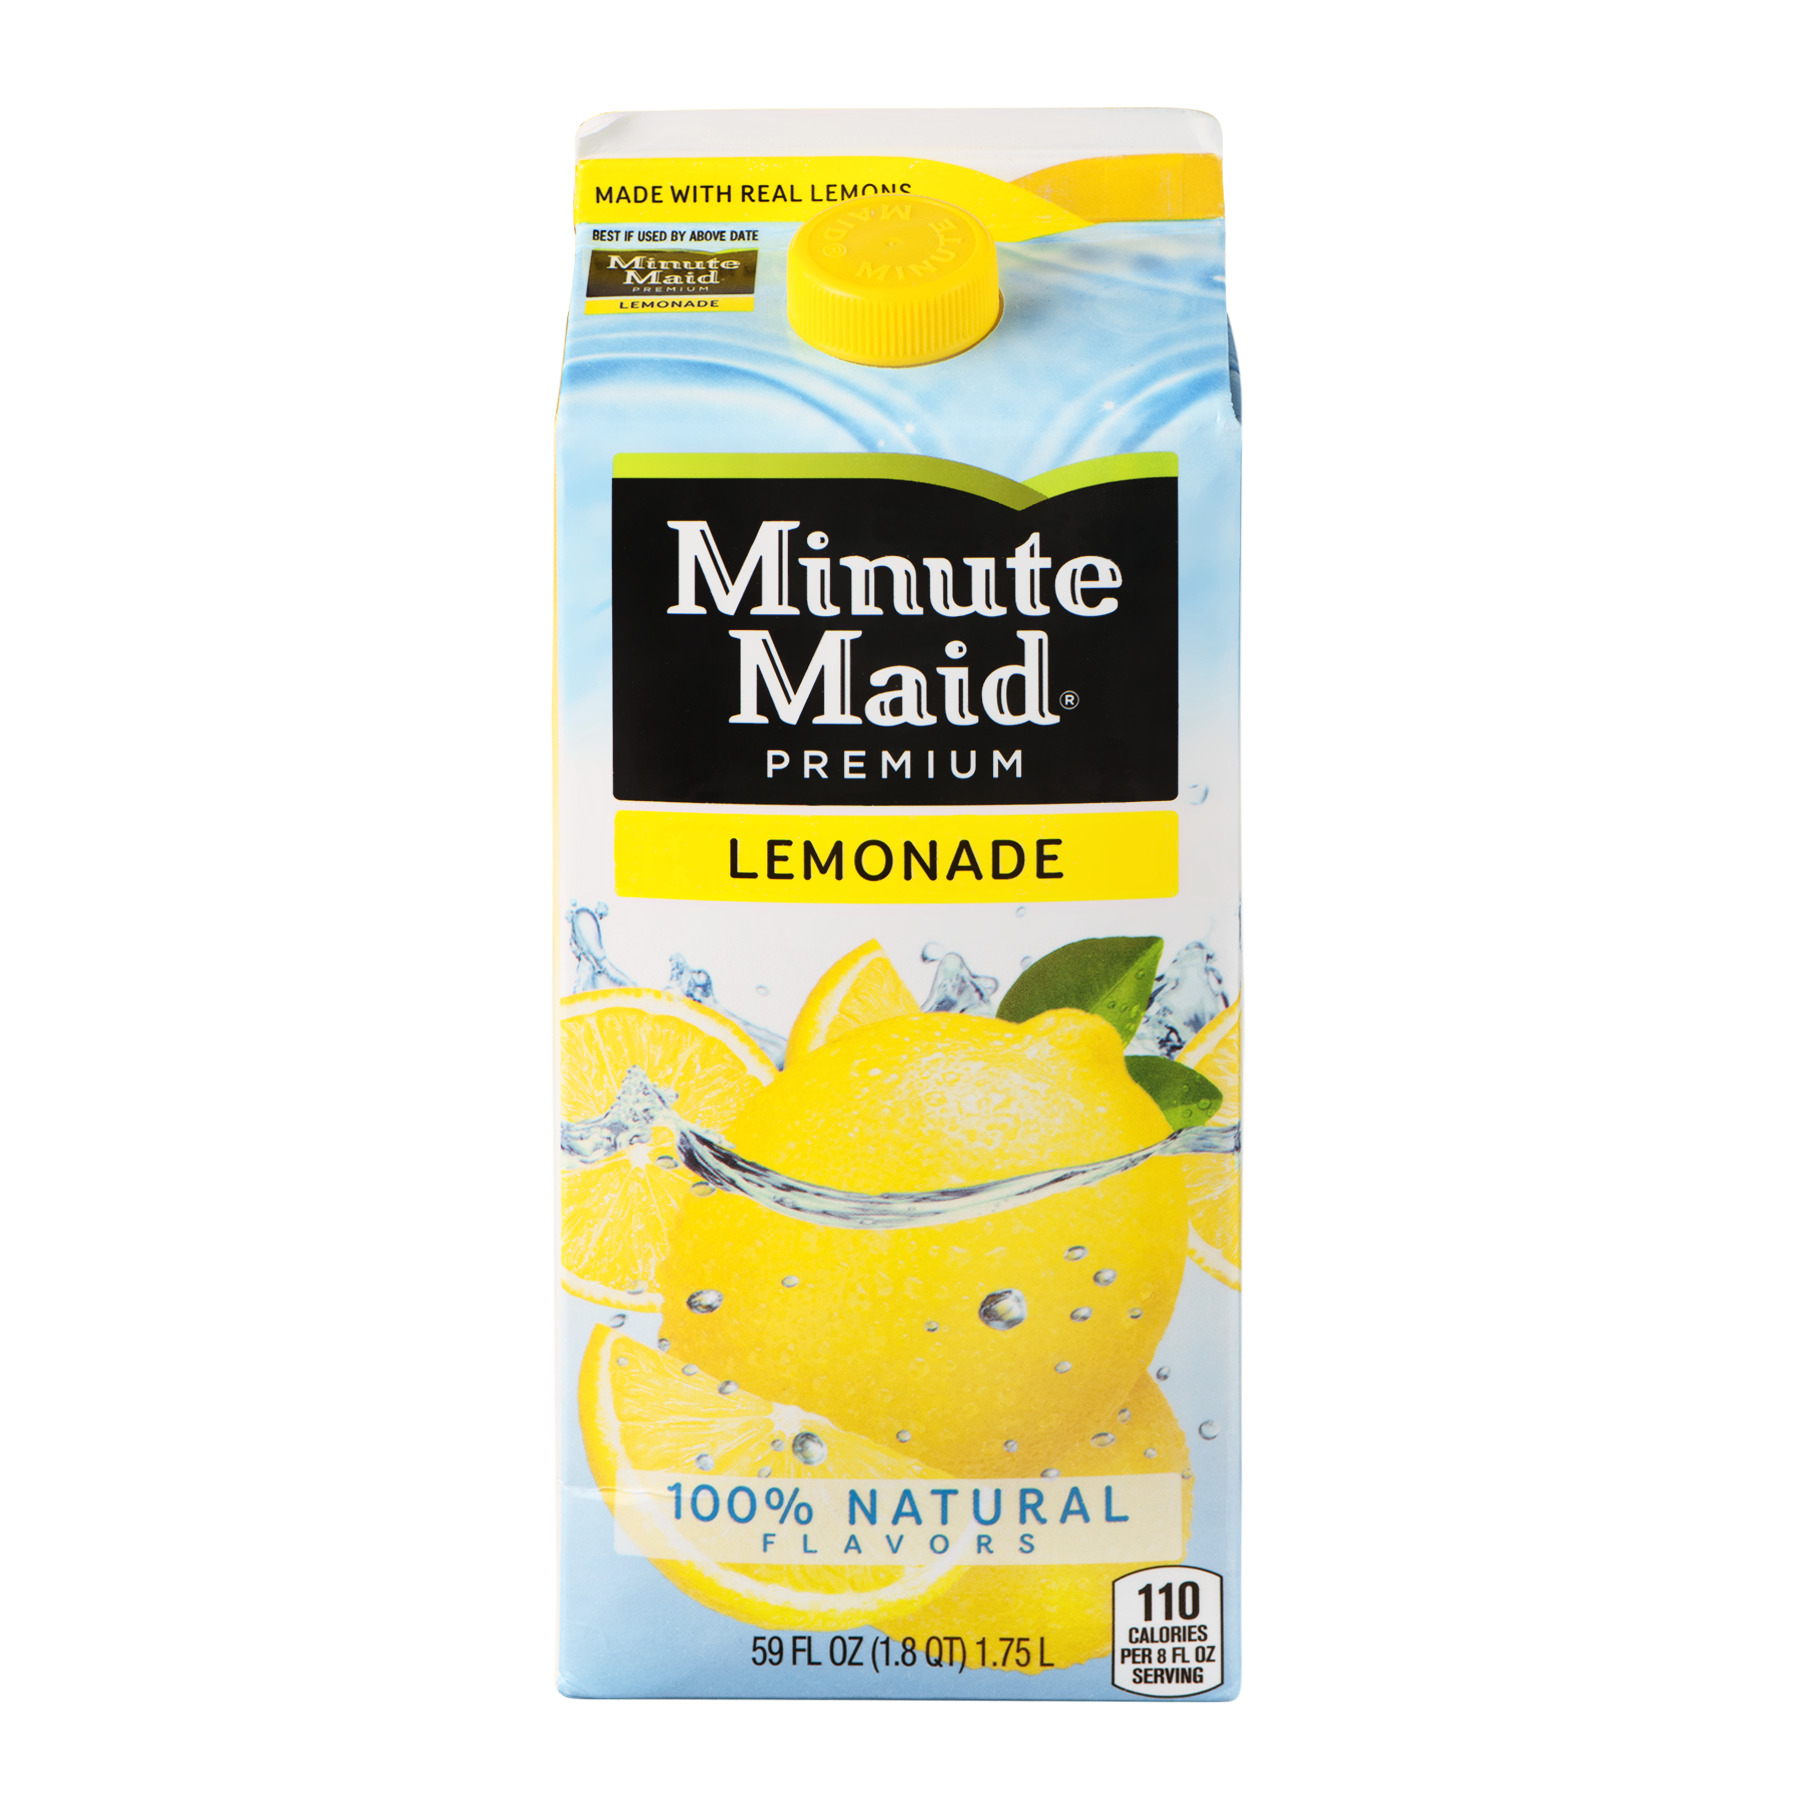 Minute Maid Premium Lemonade, 59.0 FL OZ